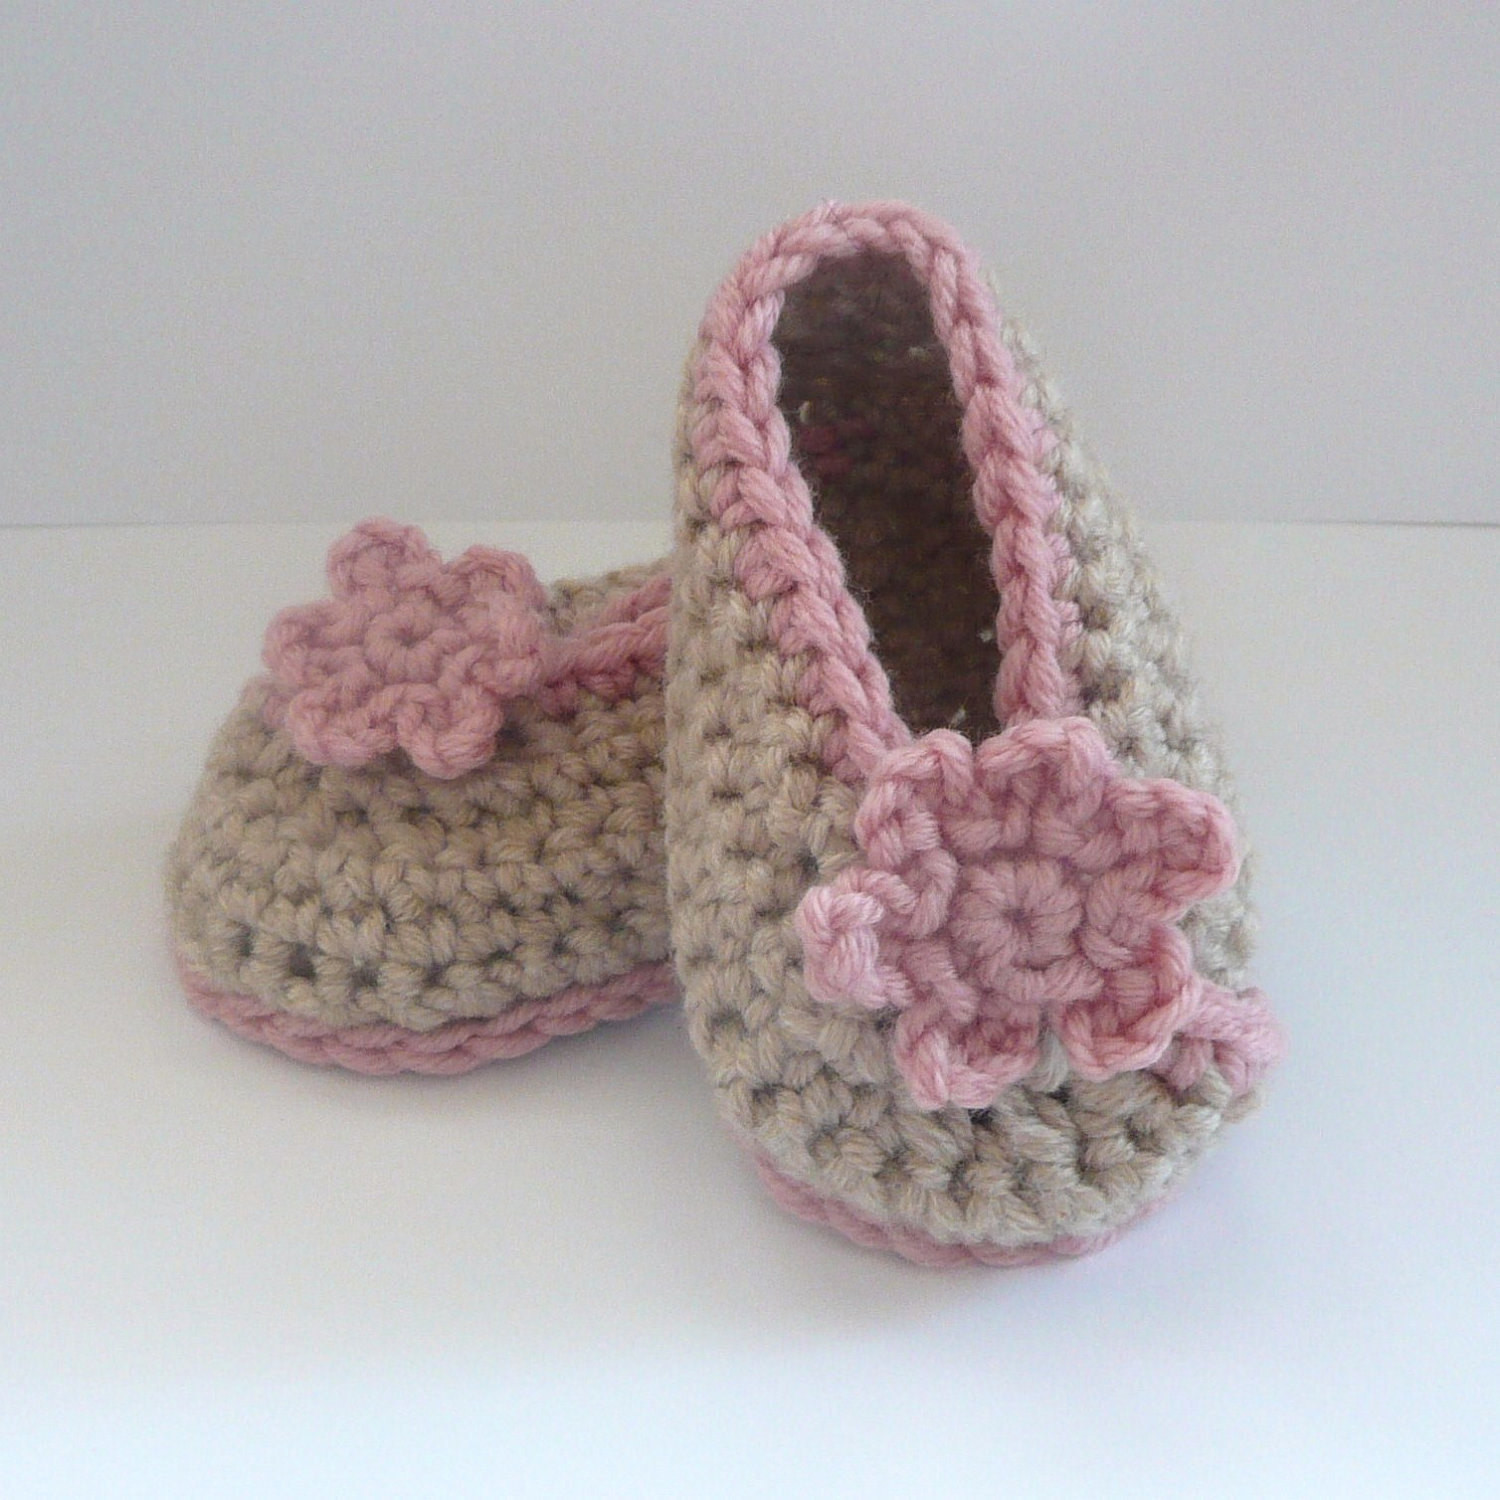 Best Of Crochet Pattern Baby Booties Crossover Baby Shoes Instant Crochet Baby Slippers Of Marvelous 50 Images Crochet Baby Slippers